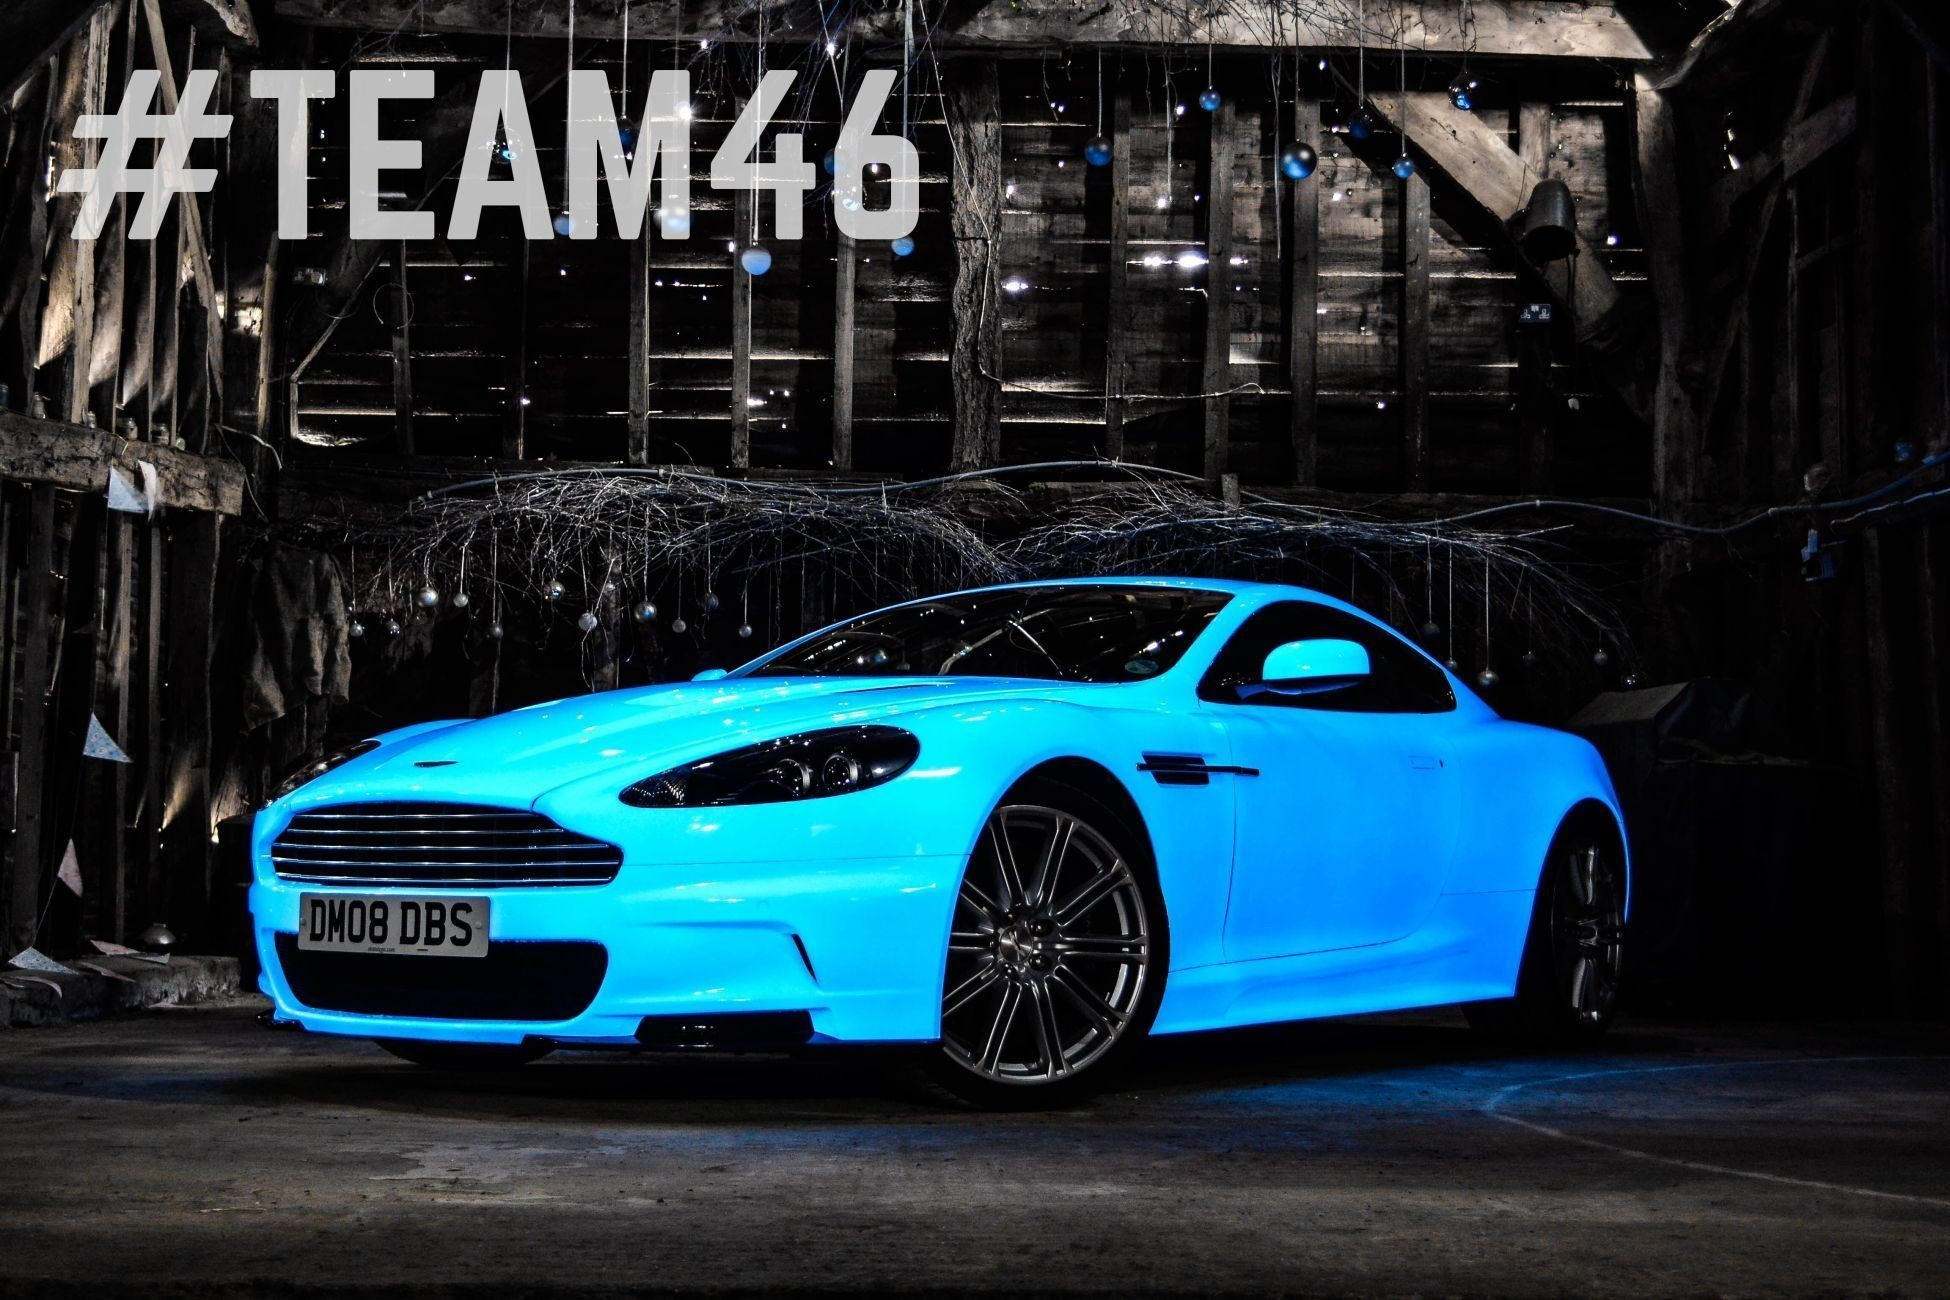 Coolest Car In The World Wallpaper Gumball 3000 Aston Martin Sports New Glow In The Dark Paint